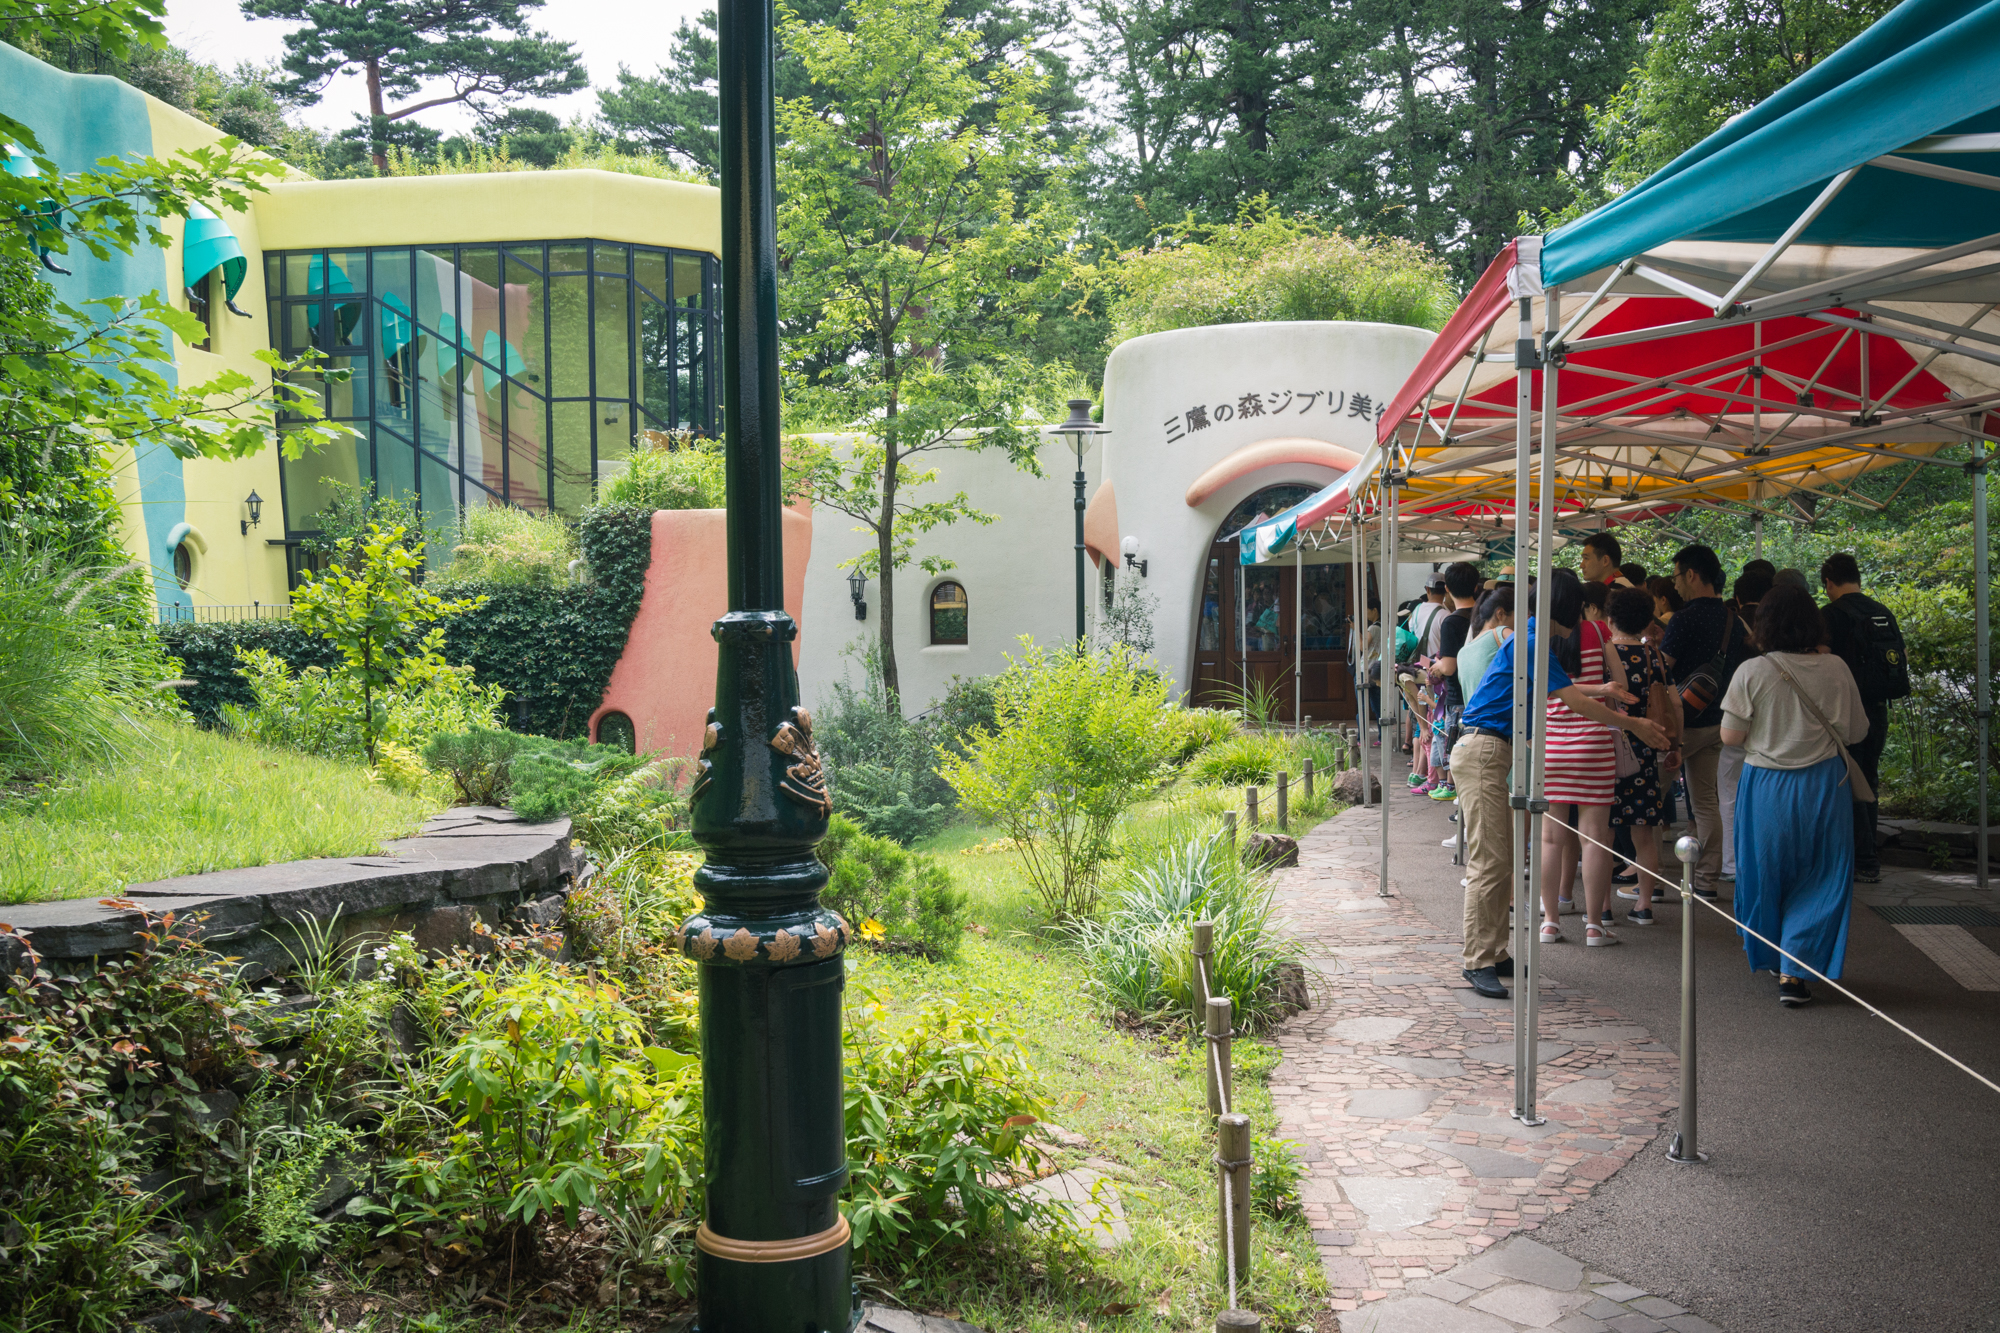 Outside of Ghibli Museum